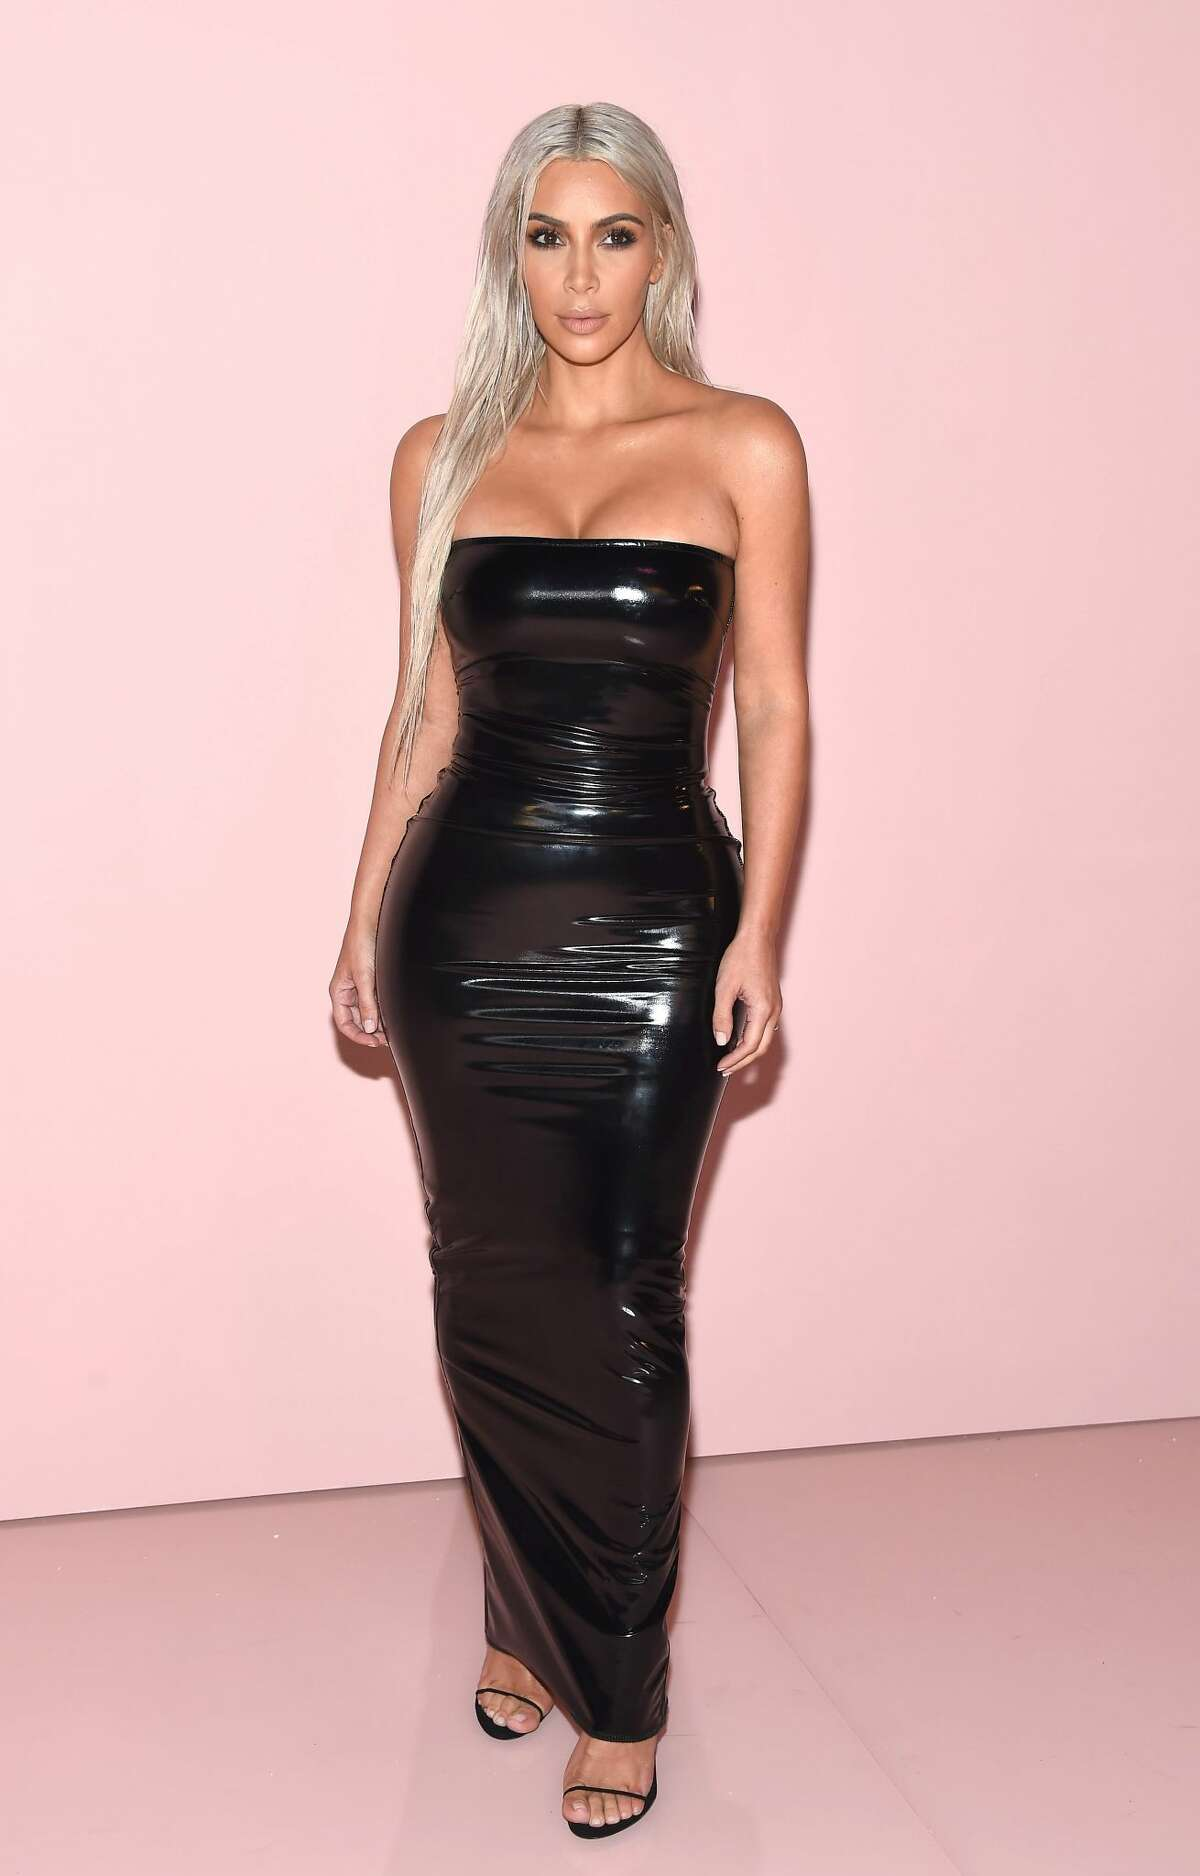 Kim Kardashian attends the Tom Ford fashion show during New York Fashion Week on September 6, 2017. Keep clicking to Kim K's most shocking looks.